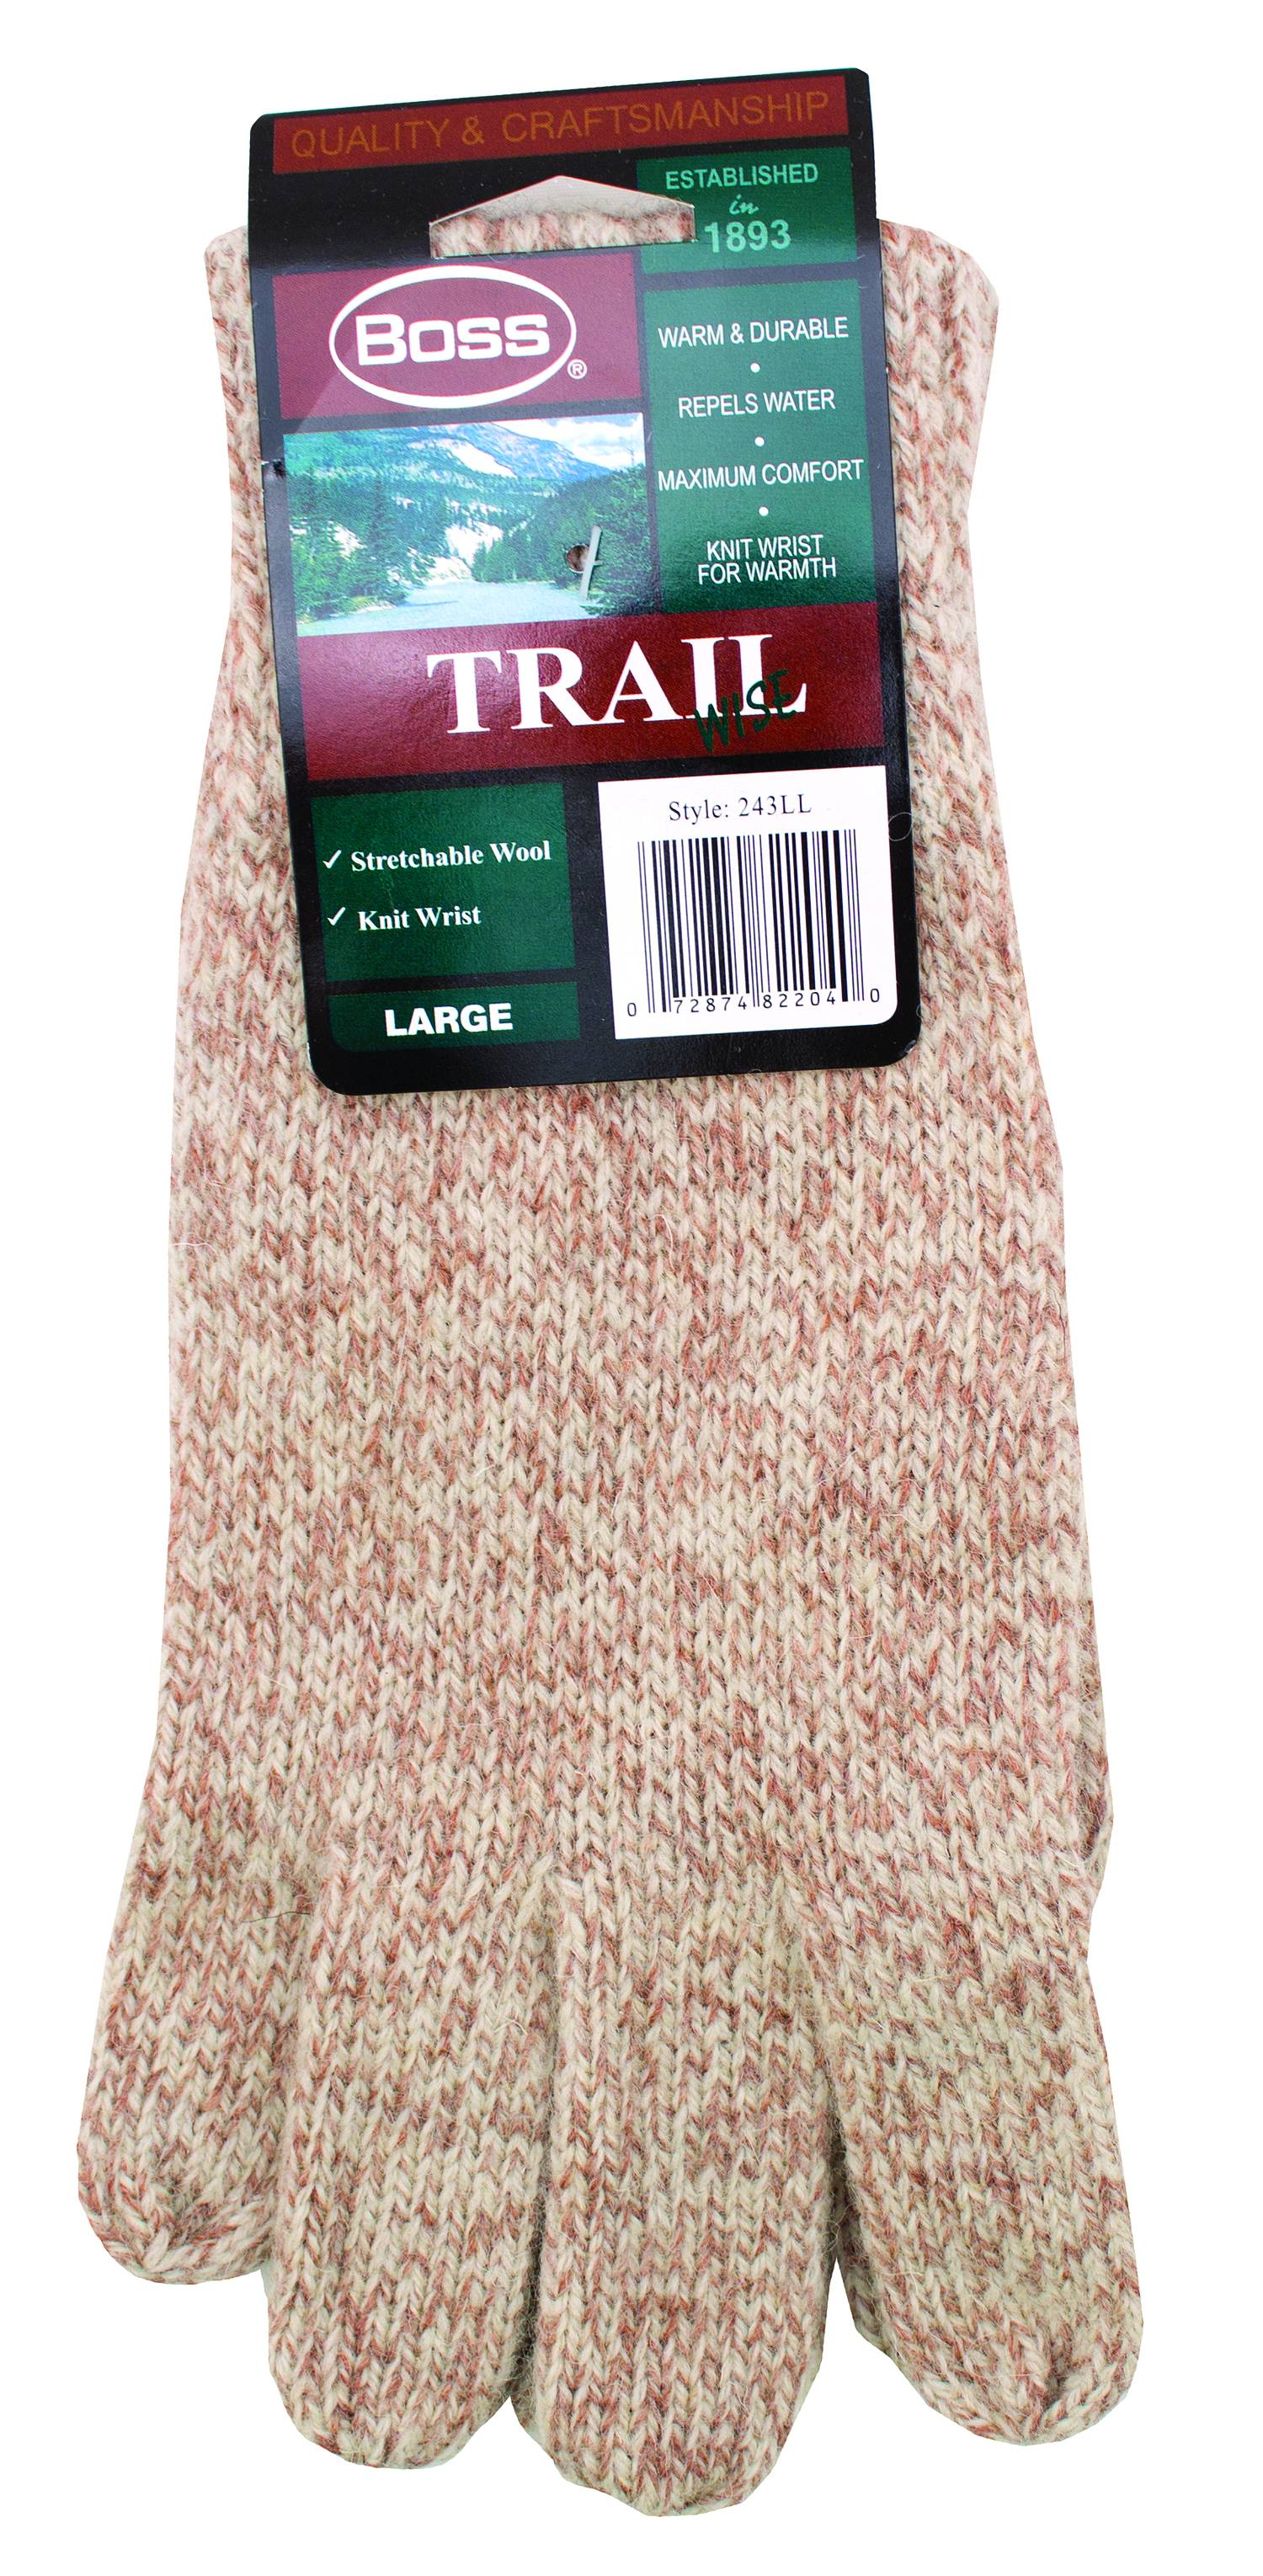 Boss Trail Tweed Ragg Wool Glove